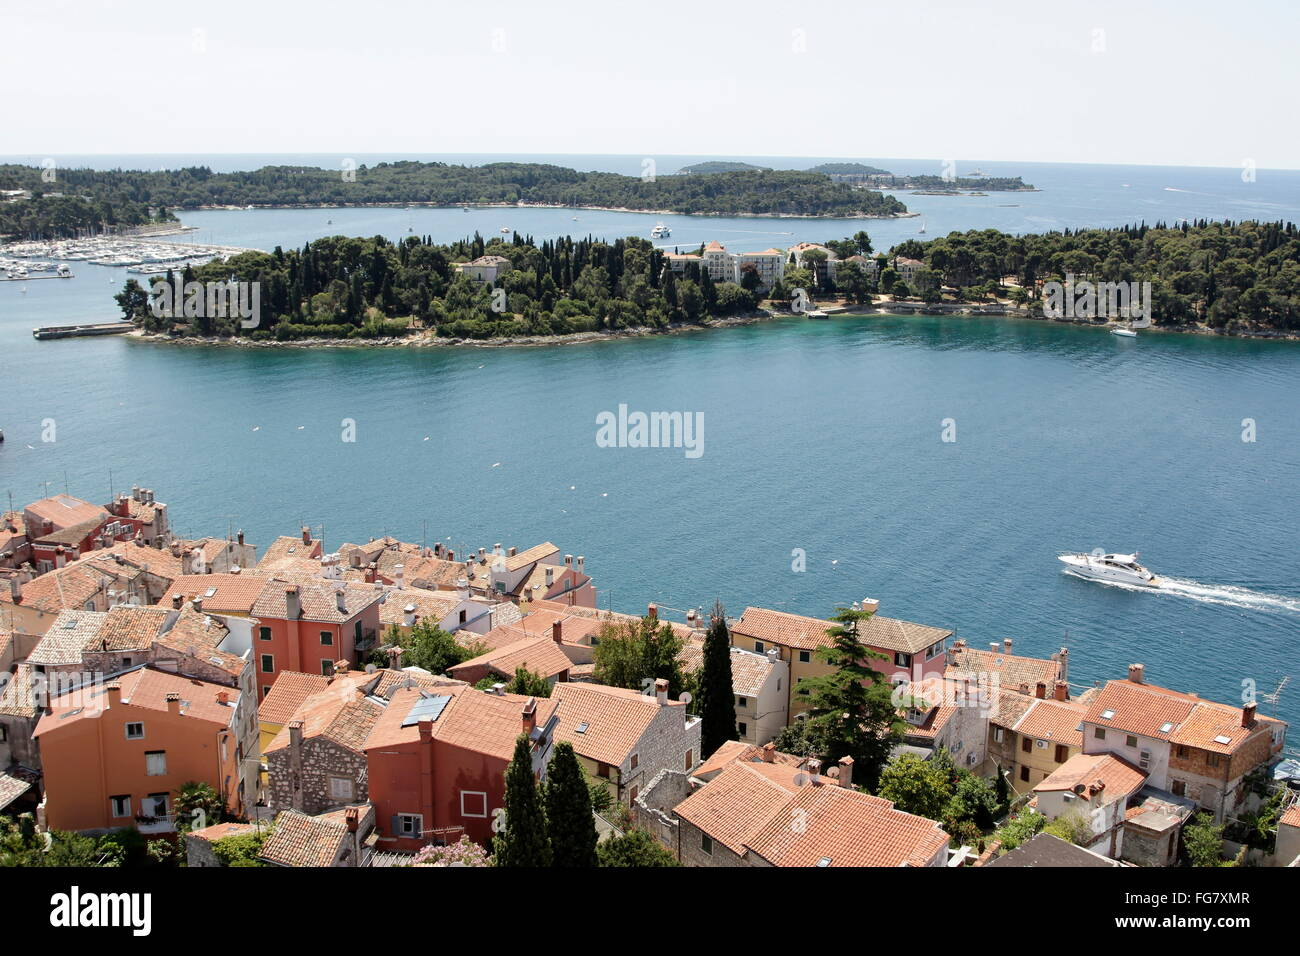 geography / travel, Croatia, Istria, Rovinj, view from steeple of St. Euphemia towards the isle St. Katarina, Additional - Stock Image